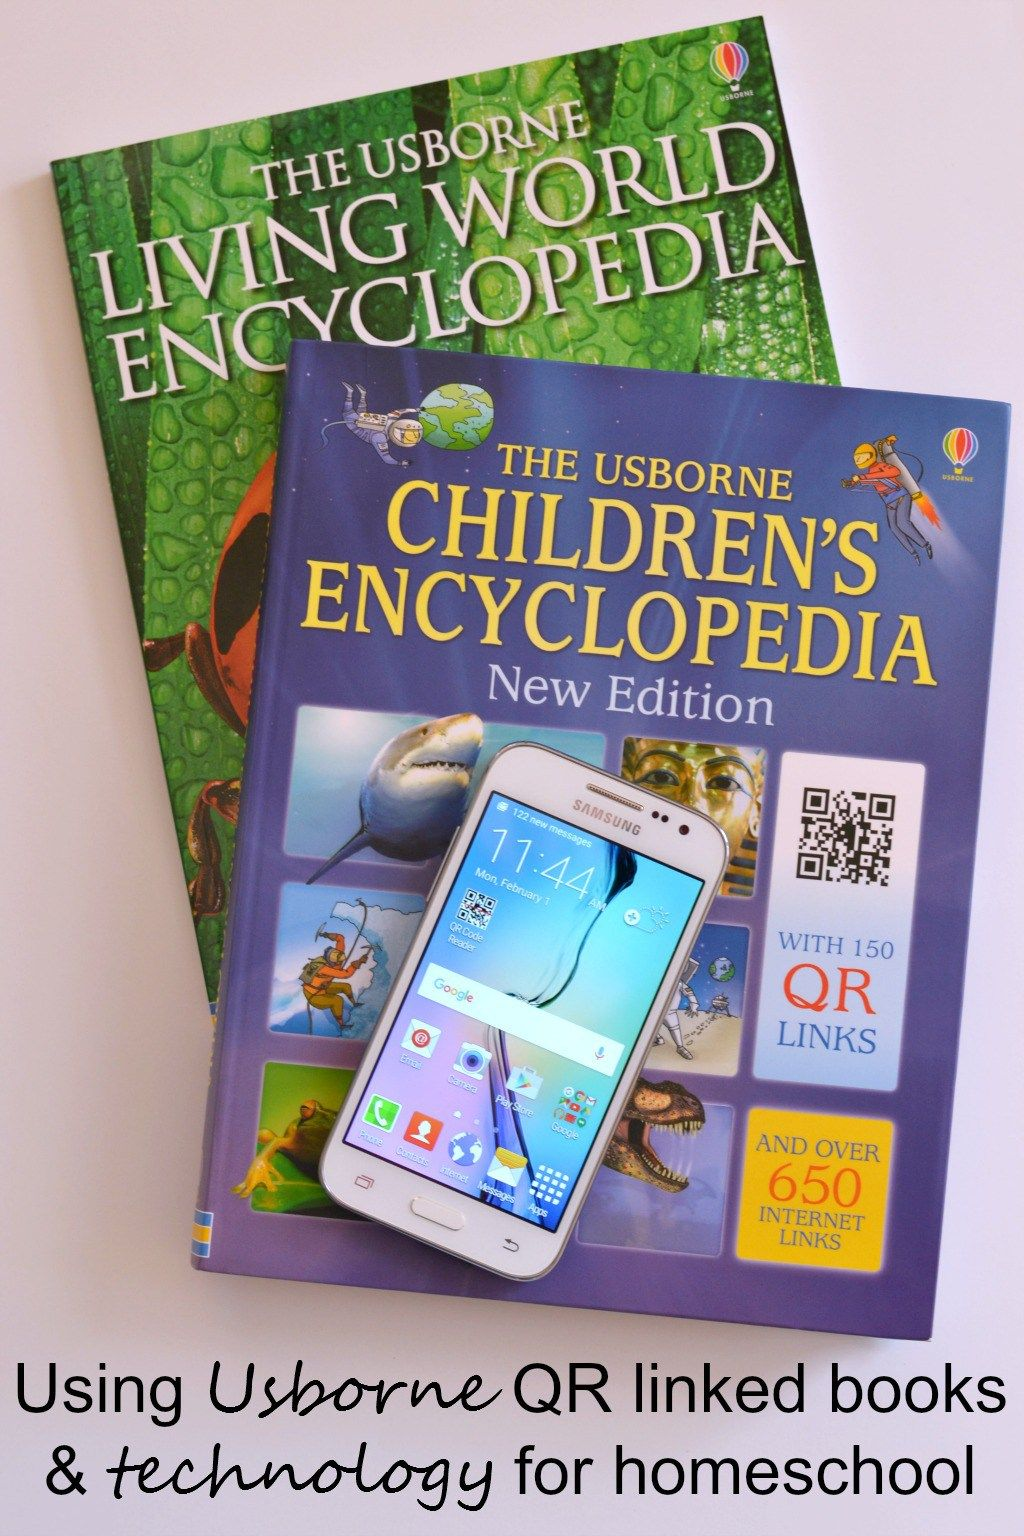 Books + Technology = Perfect Homeschooling Tools Our